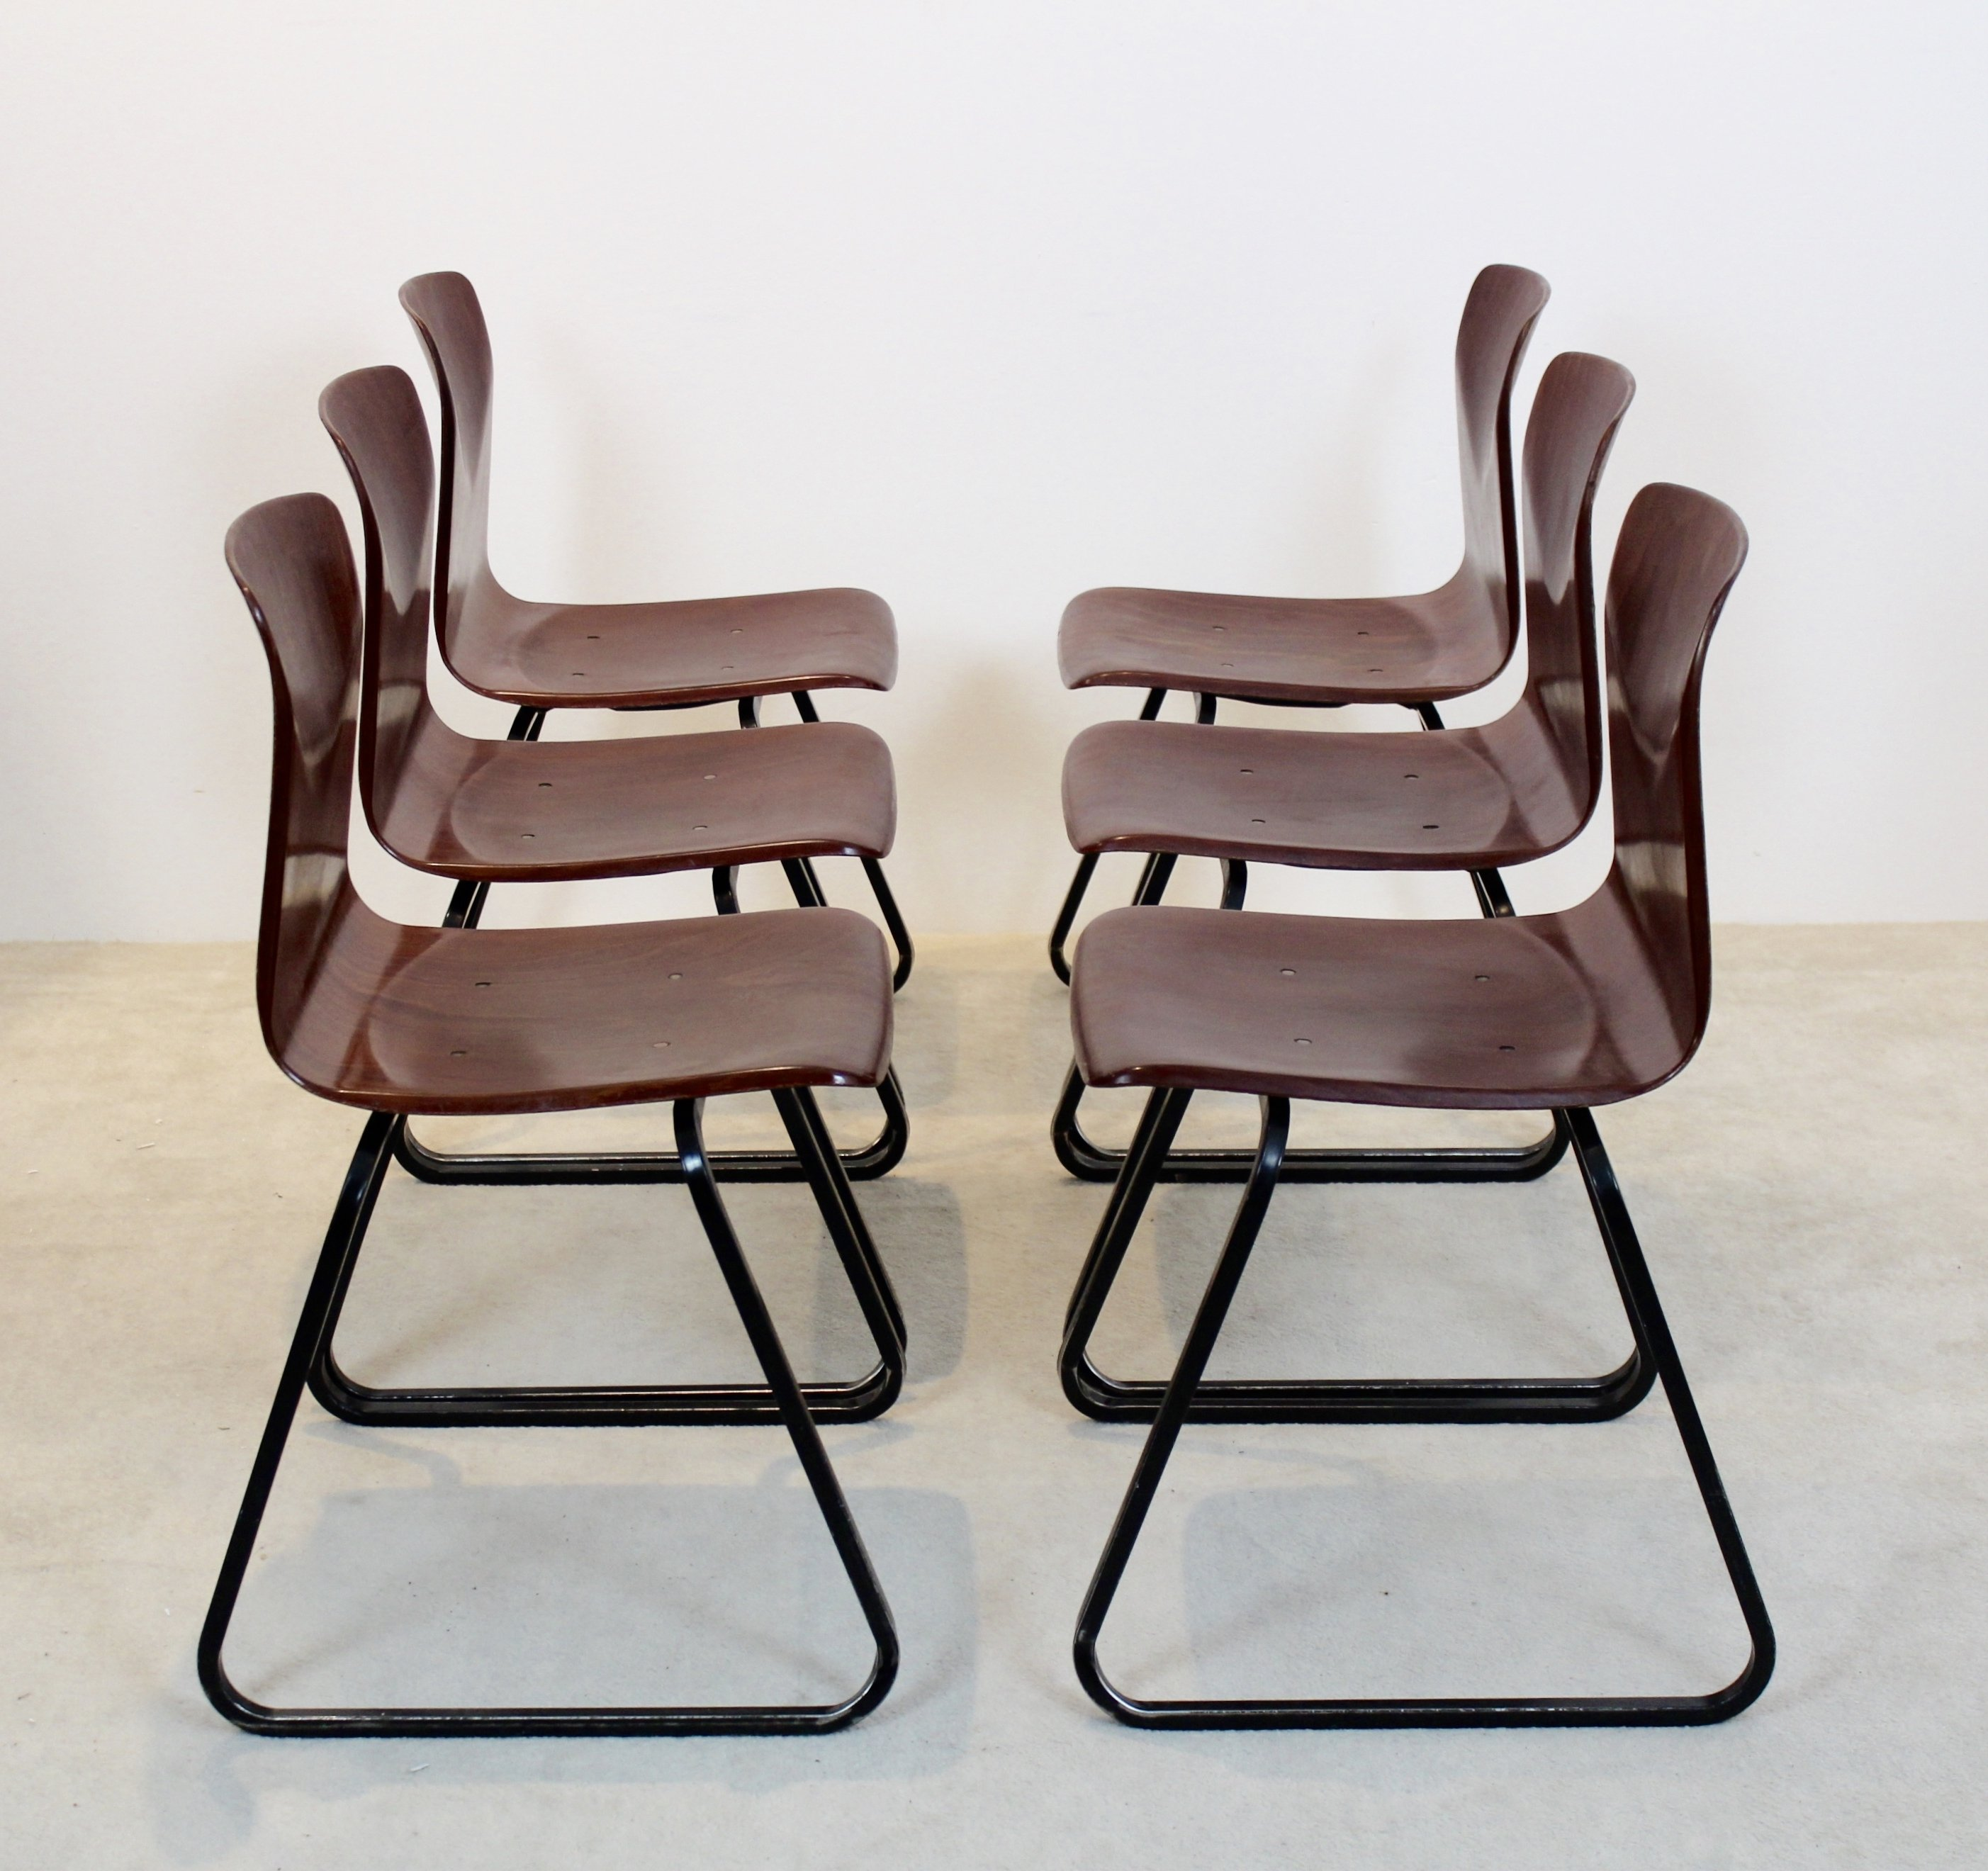 Super Brown Stackable S22 Pagholz Galvanitas Industrial Dining Chairs Alphanode Cool Chair Designs And Ideas Alphanodeonline